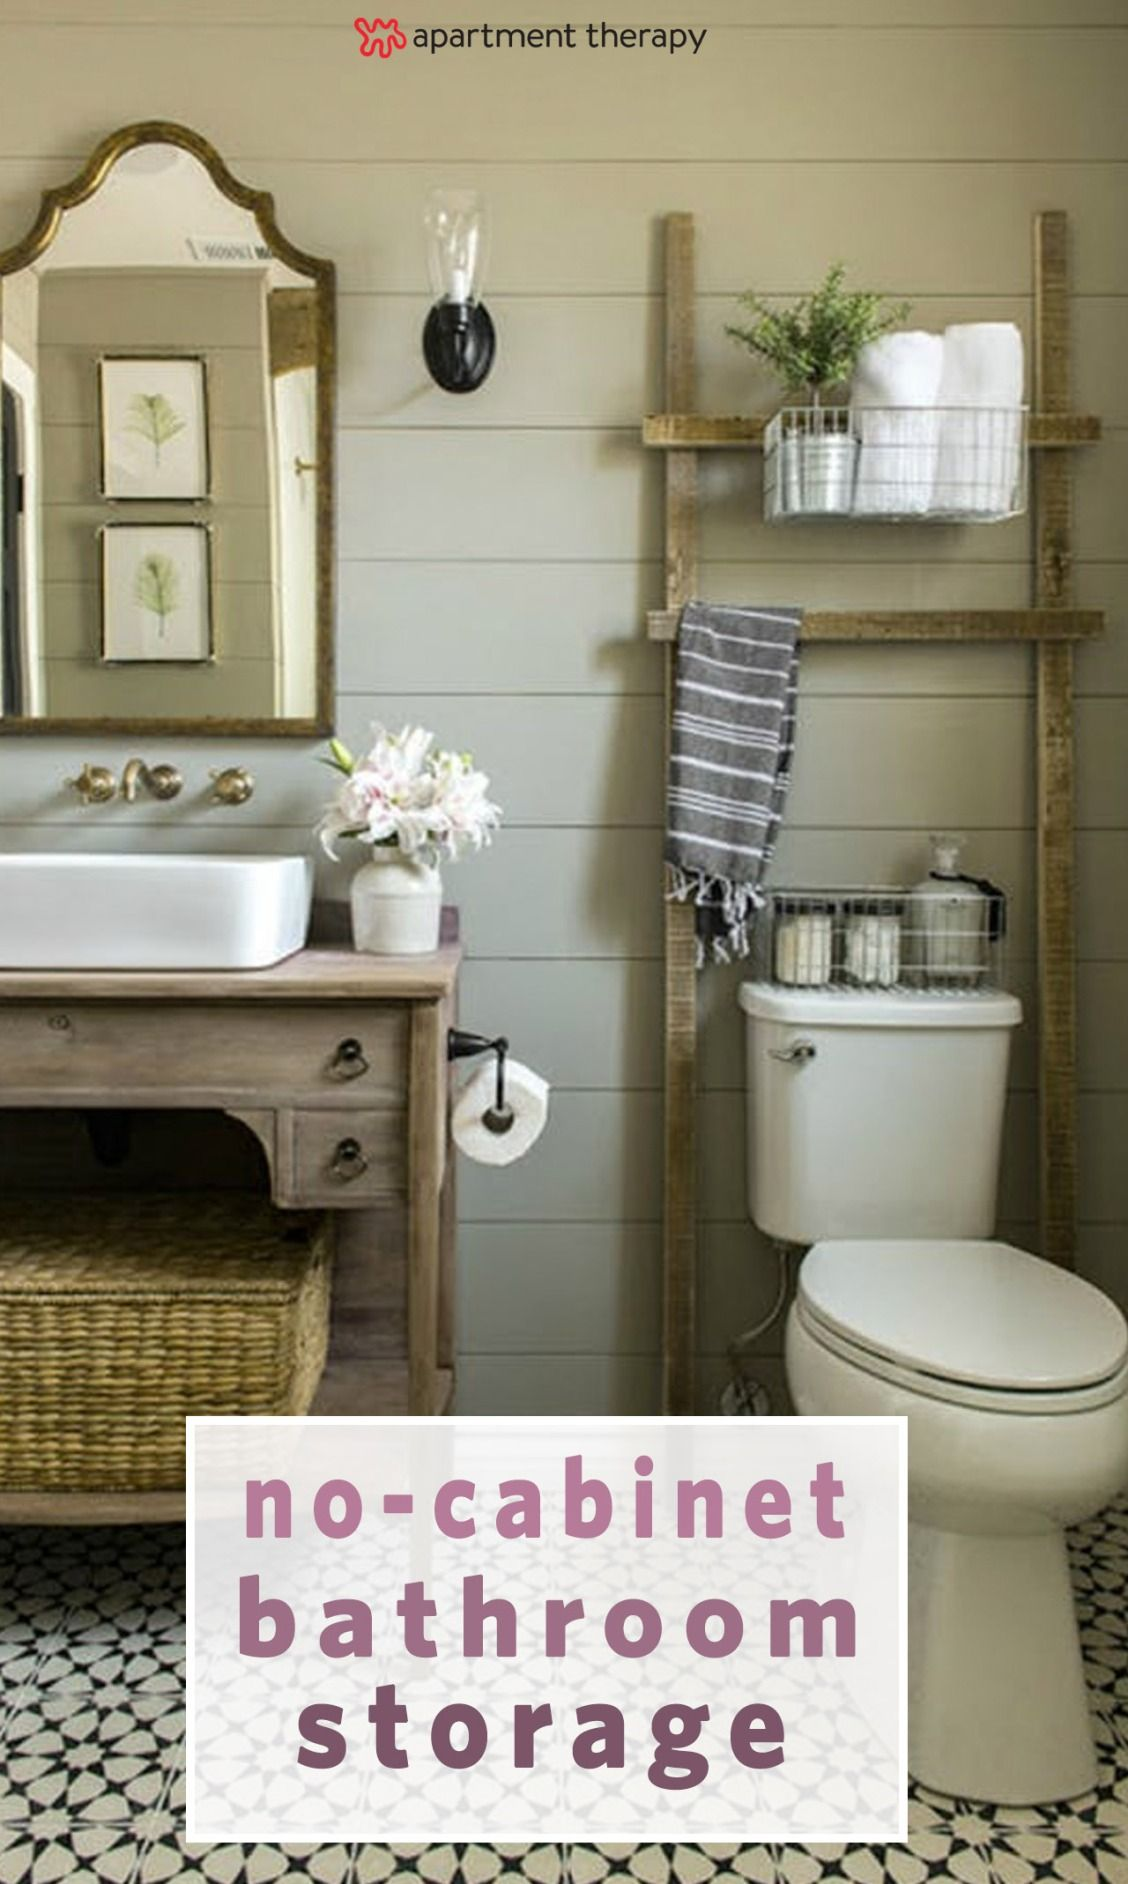 7 Ways To Organize A Bathroom Without A Medicine Cabinet Or Drawers Small Bathroom Remodel Beautiful Bathroom Renovations Bathroom Renovations